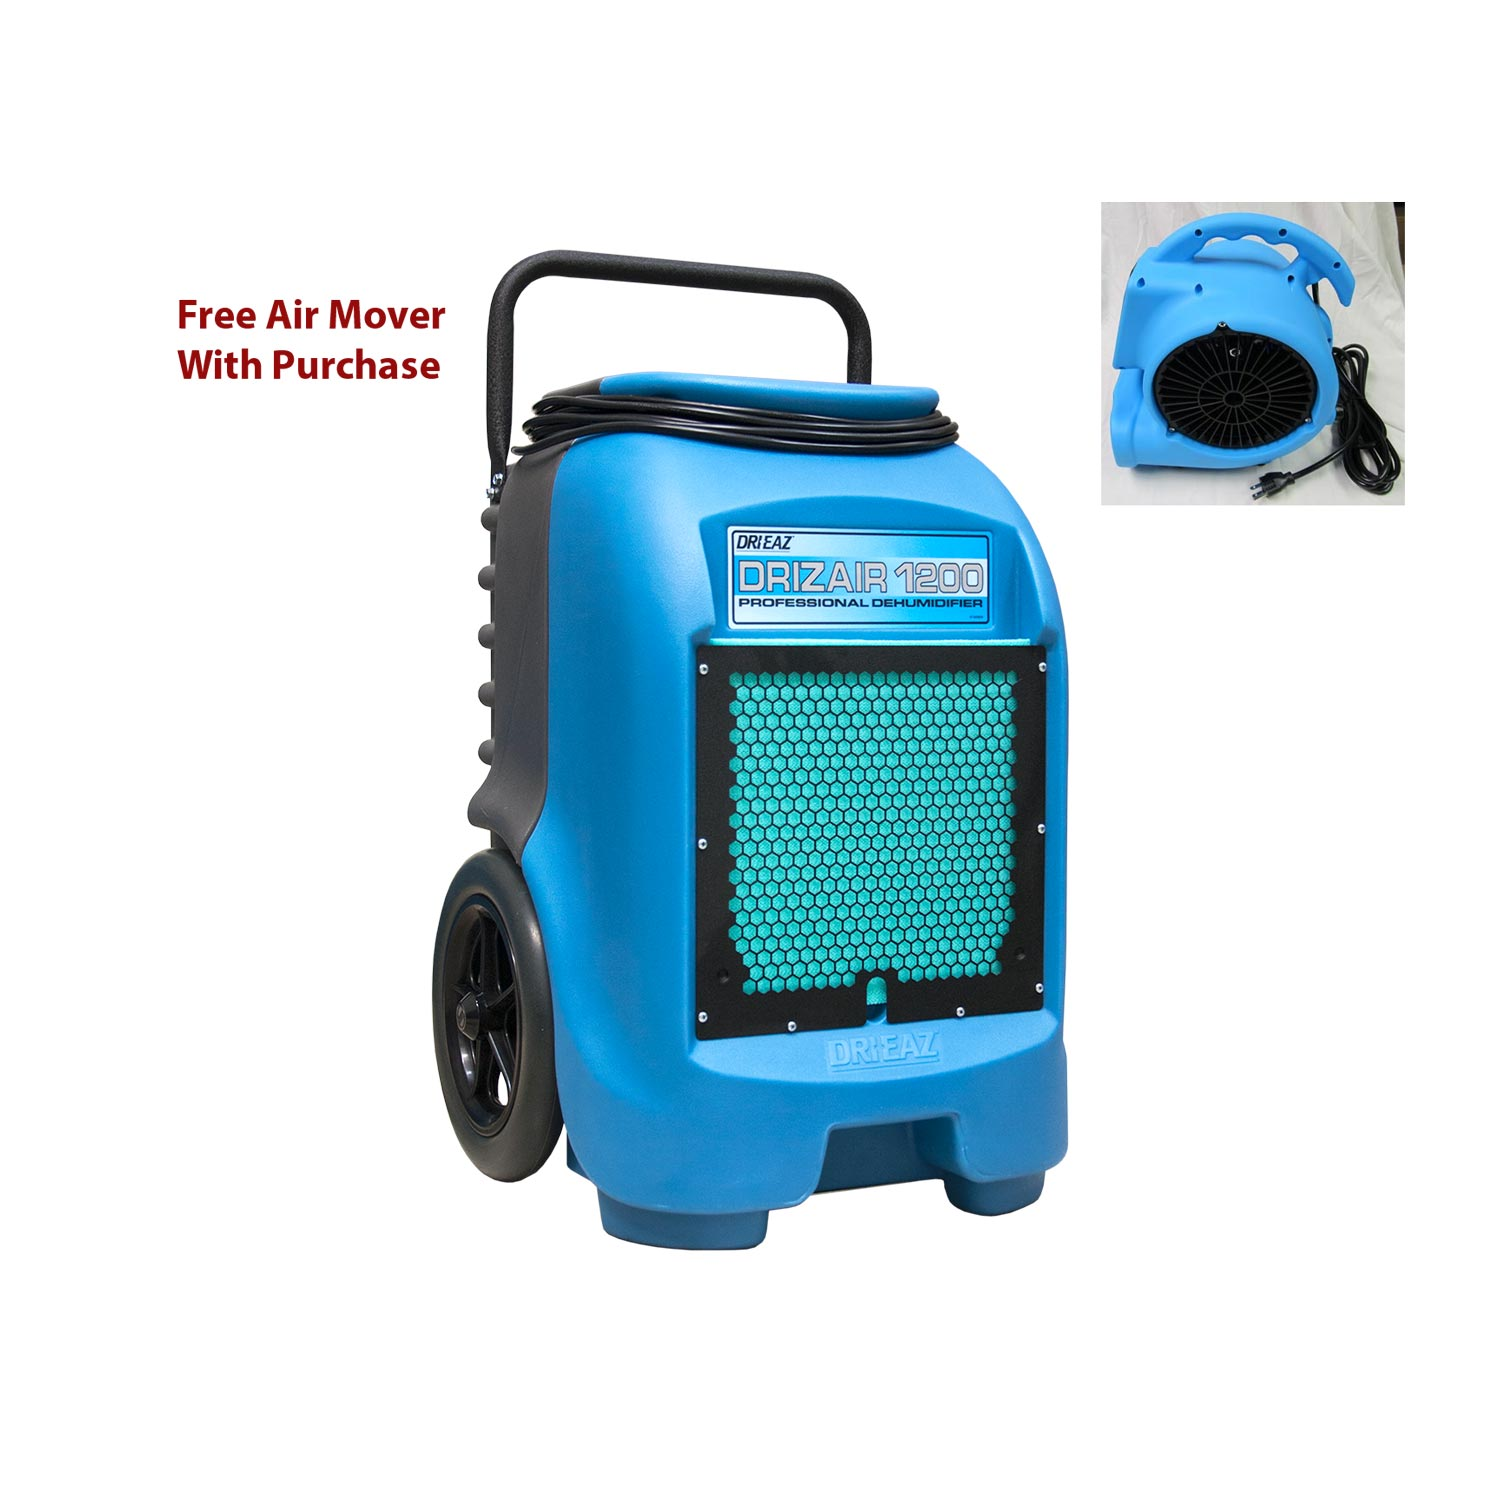 Drieaz F203-A Drizair 1200 Industrial Restoration Dehumidifier Use Promo Code 5%OFF FREE Air Mover FREE Shipping F203A